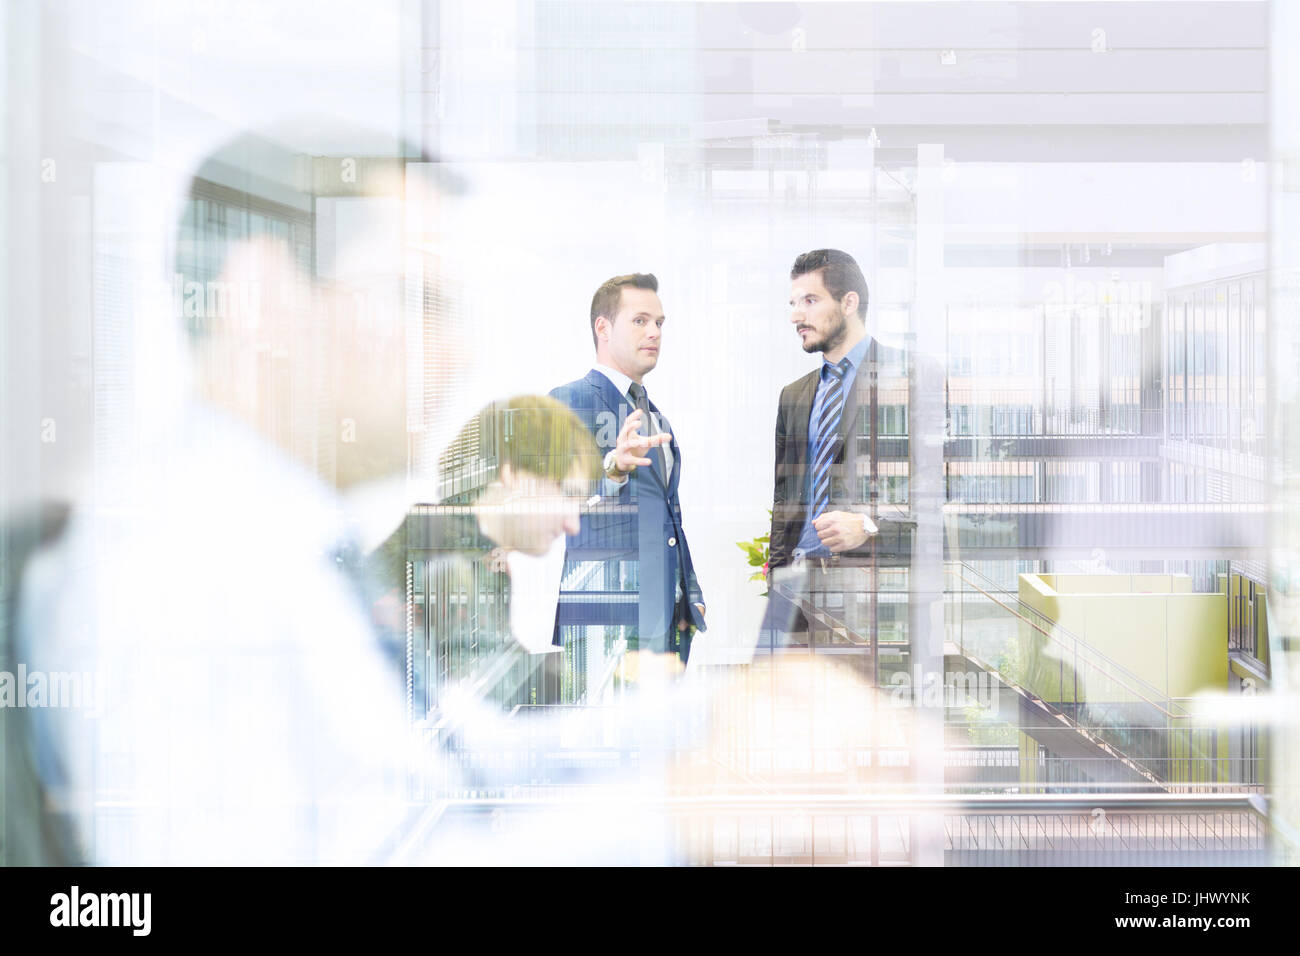 Business people in modern office. - Stock Image